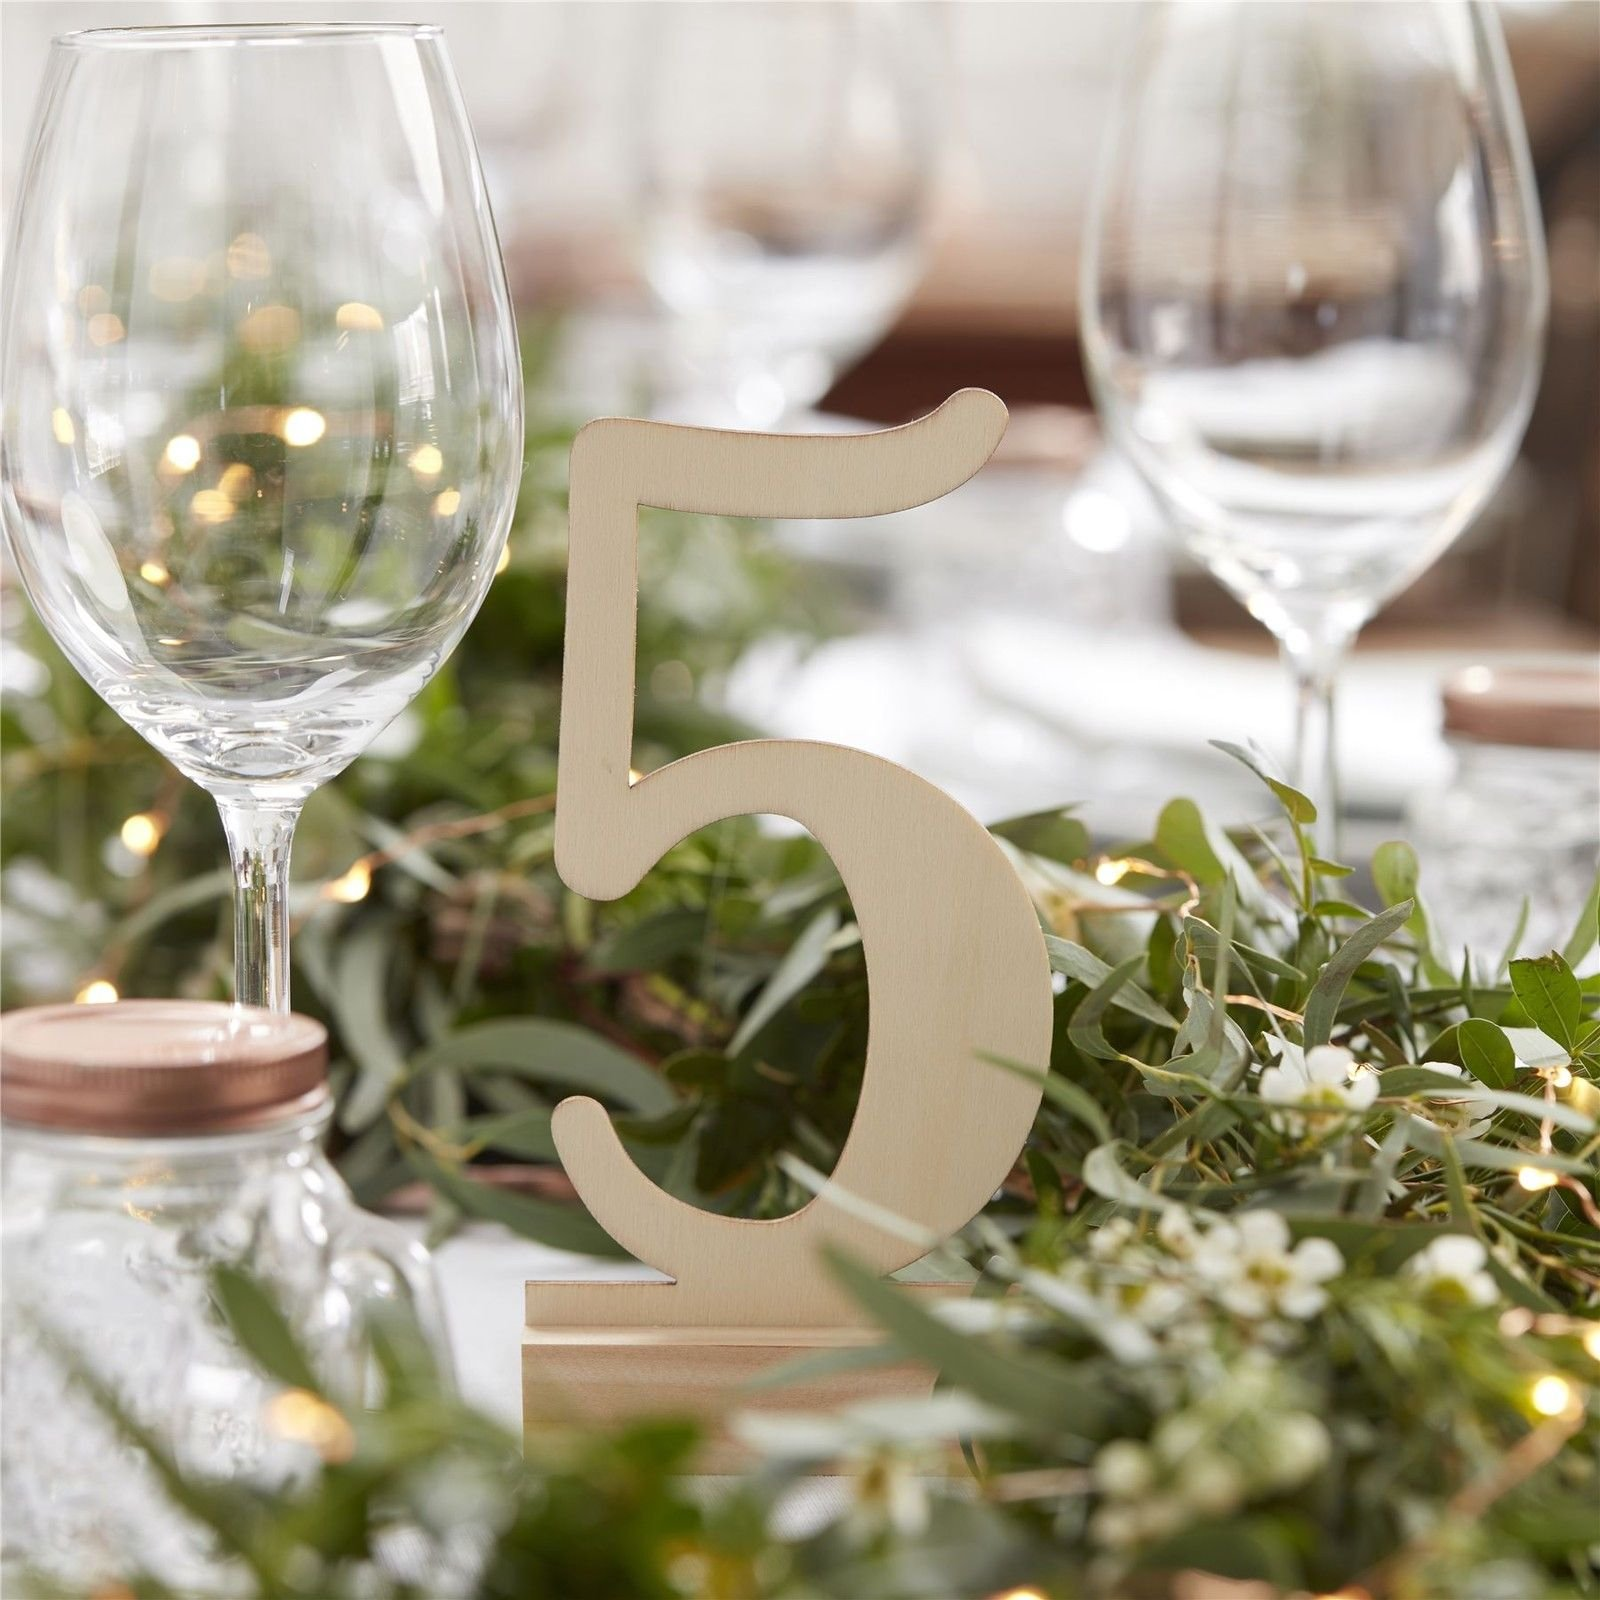 Giga Gud 20pcs (1-20) Wooden Table Numbers for Party Home Decoration Vintage Birthday Event Banquet Anniversary Decor Natural Wooden Catering Reception Table Decoration